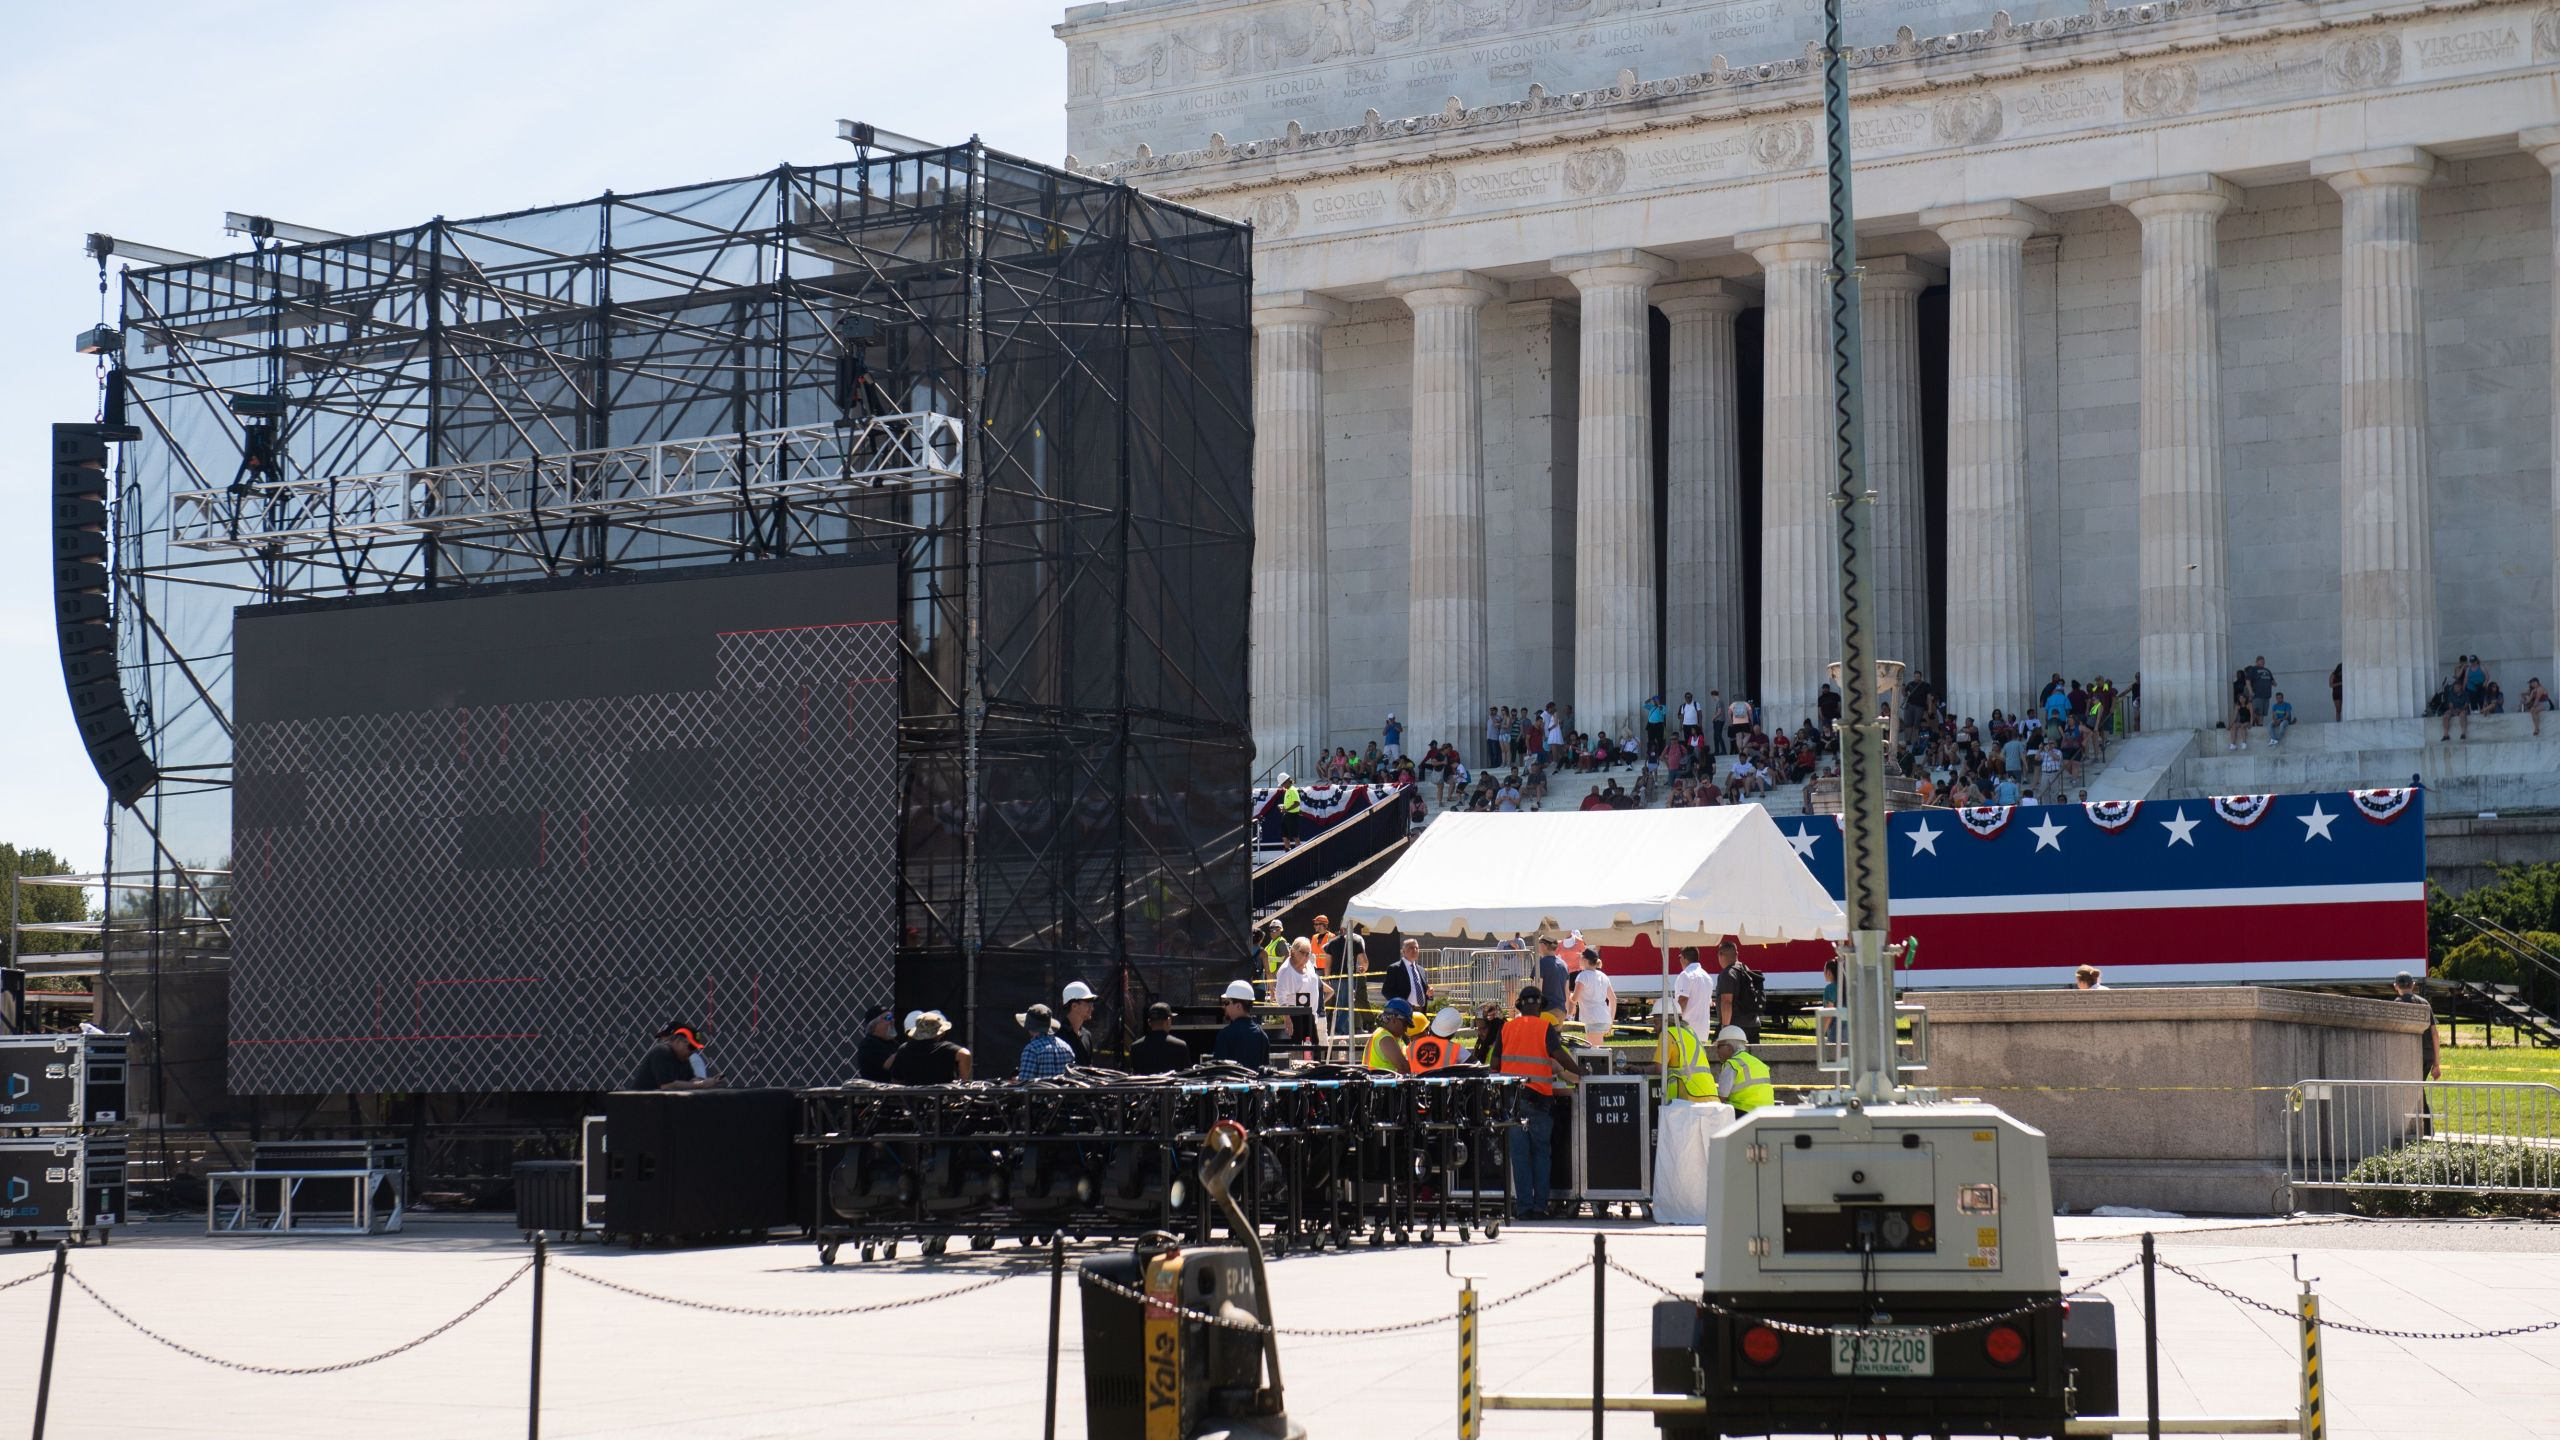 "Workers build a stage and bleachers for the ""Salute to America"" Fourth of July event with Donald Trump at the Lincoln Memorial on the National Mall in Washington, D.C., on July 1, 2019. (Credit: Saul Loeb/AFP/Getty Images)"